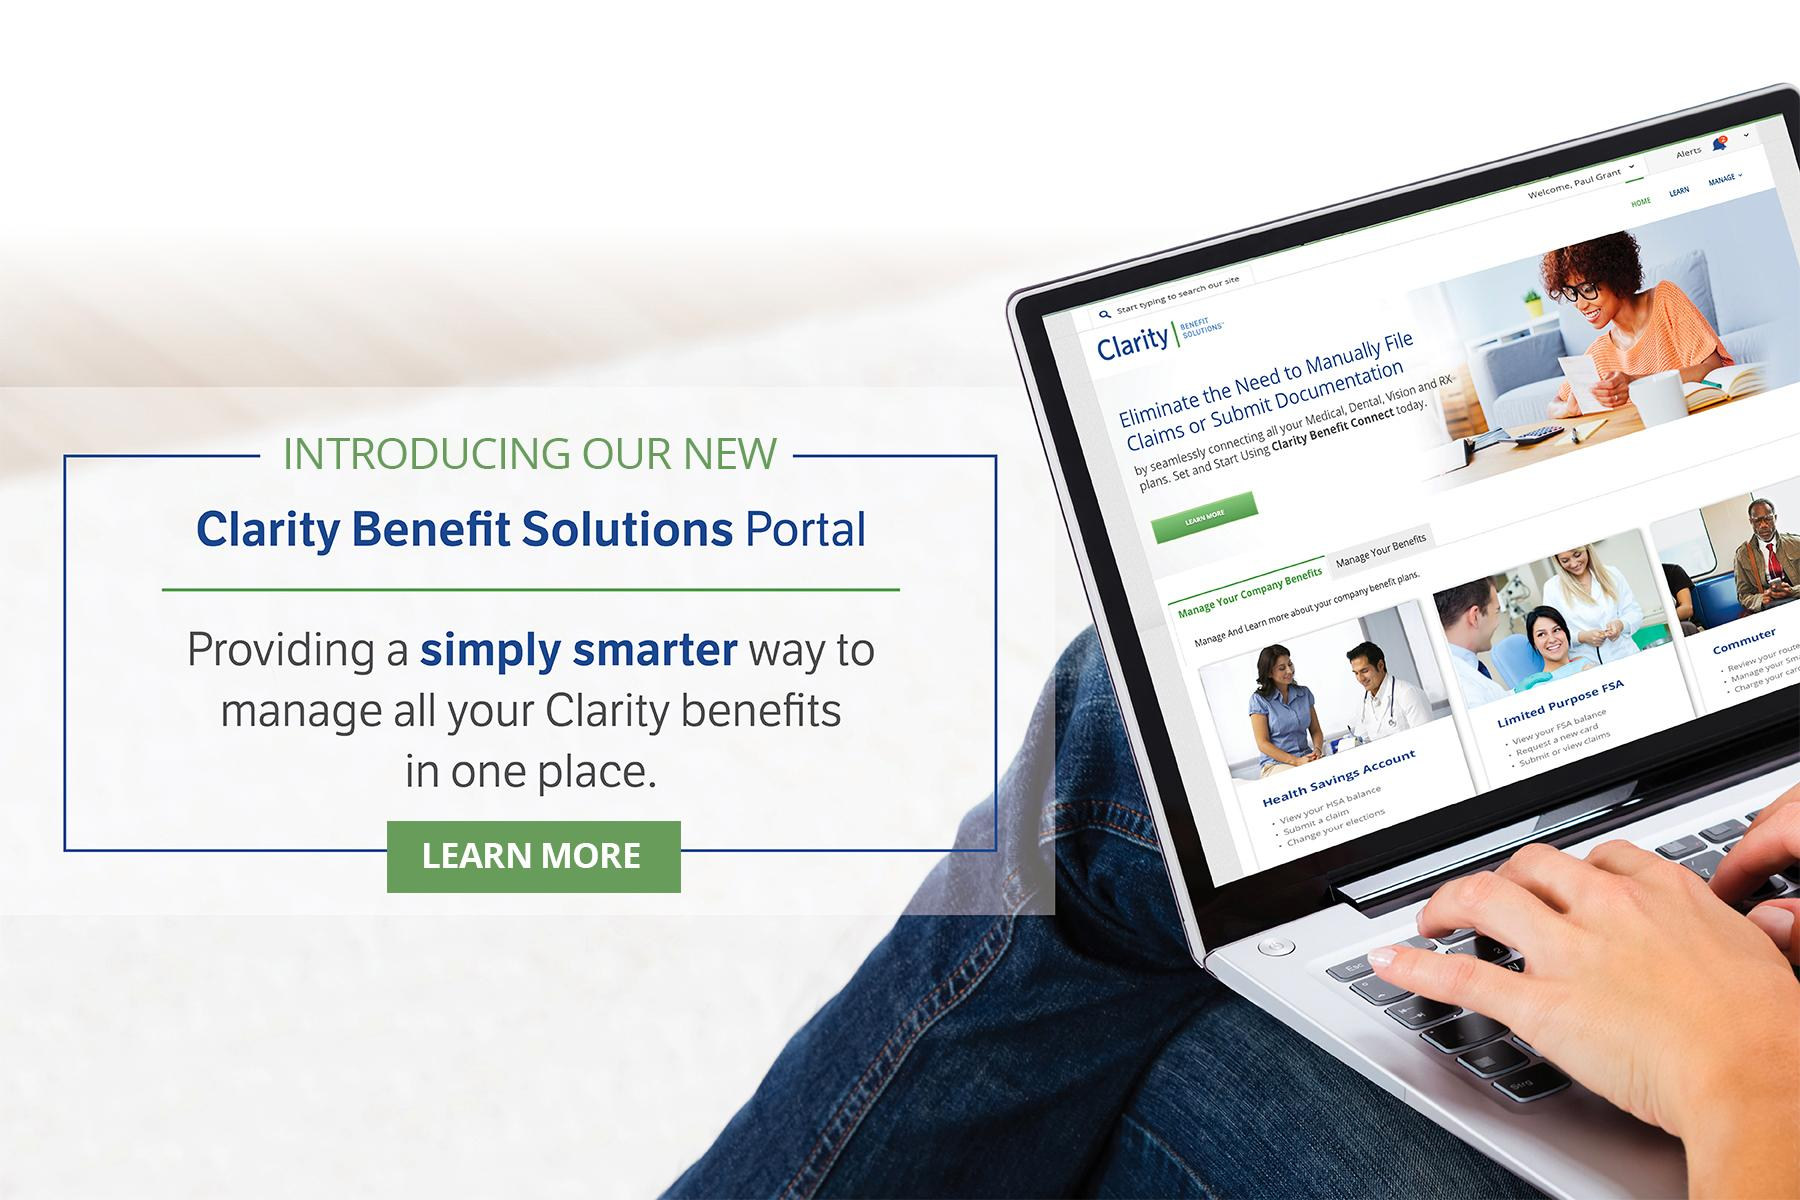 Introducing Our New SSO Portal